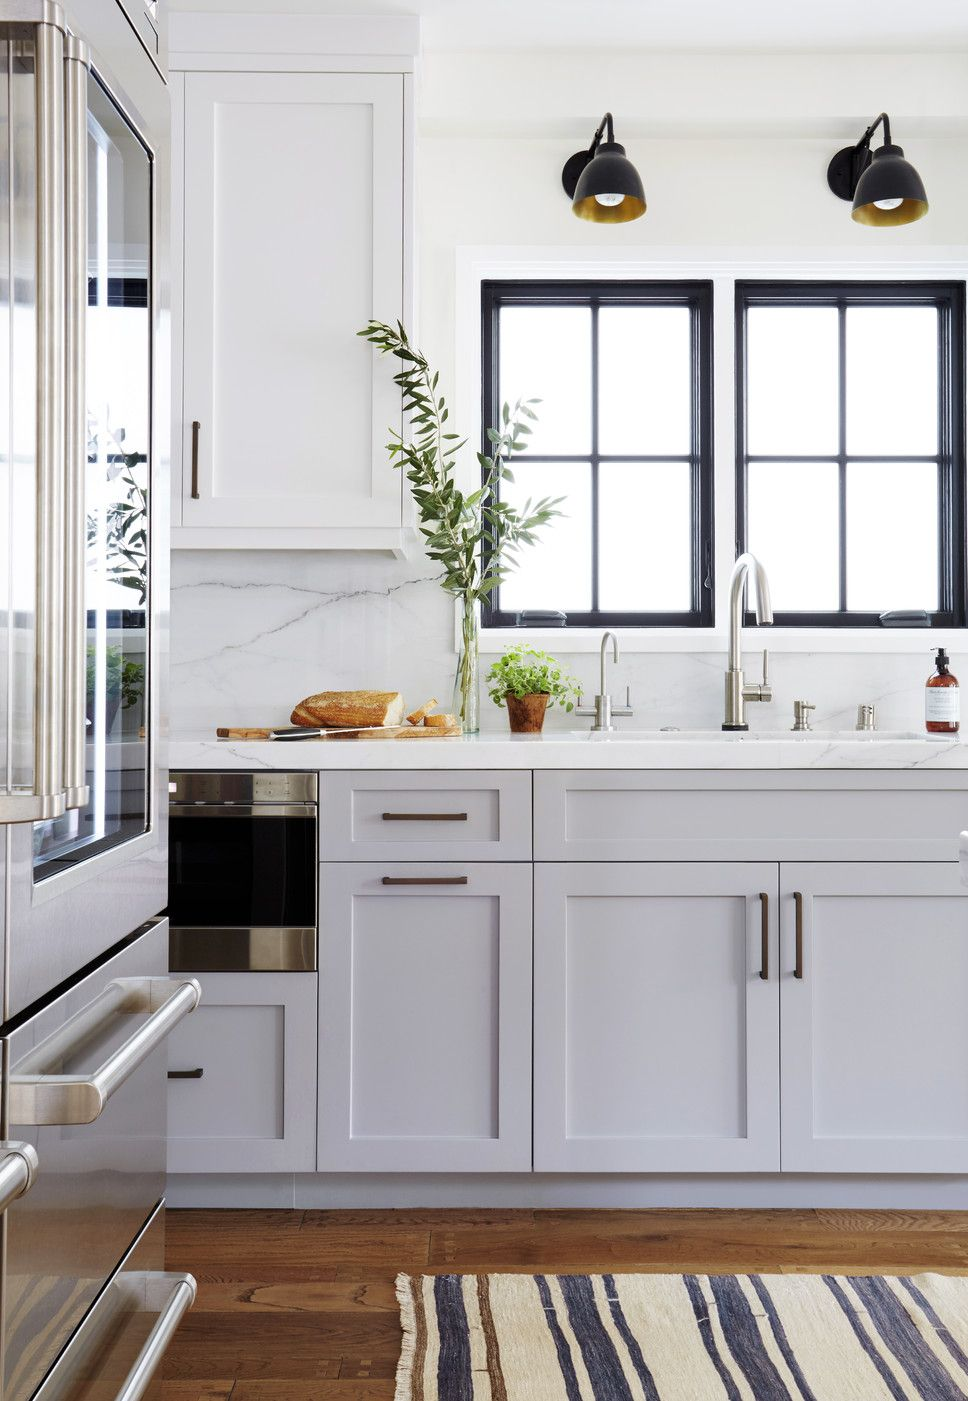 Wayfair.com - Wayfair Your Home  Home kitchens, Farmhouse kitchen